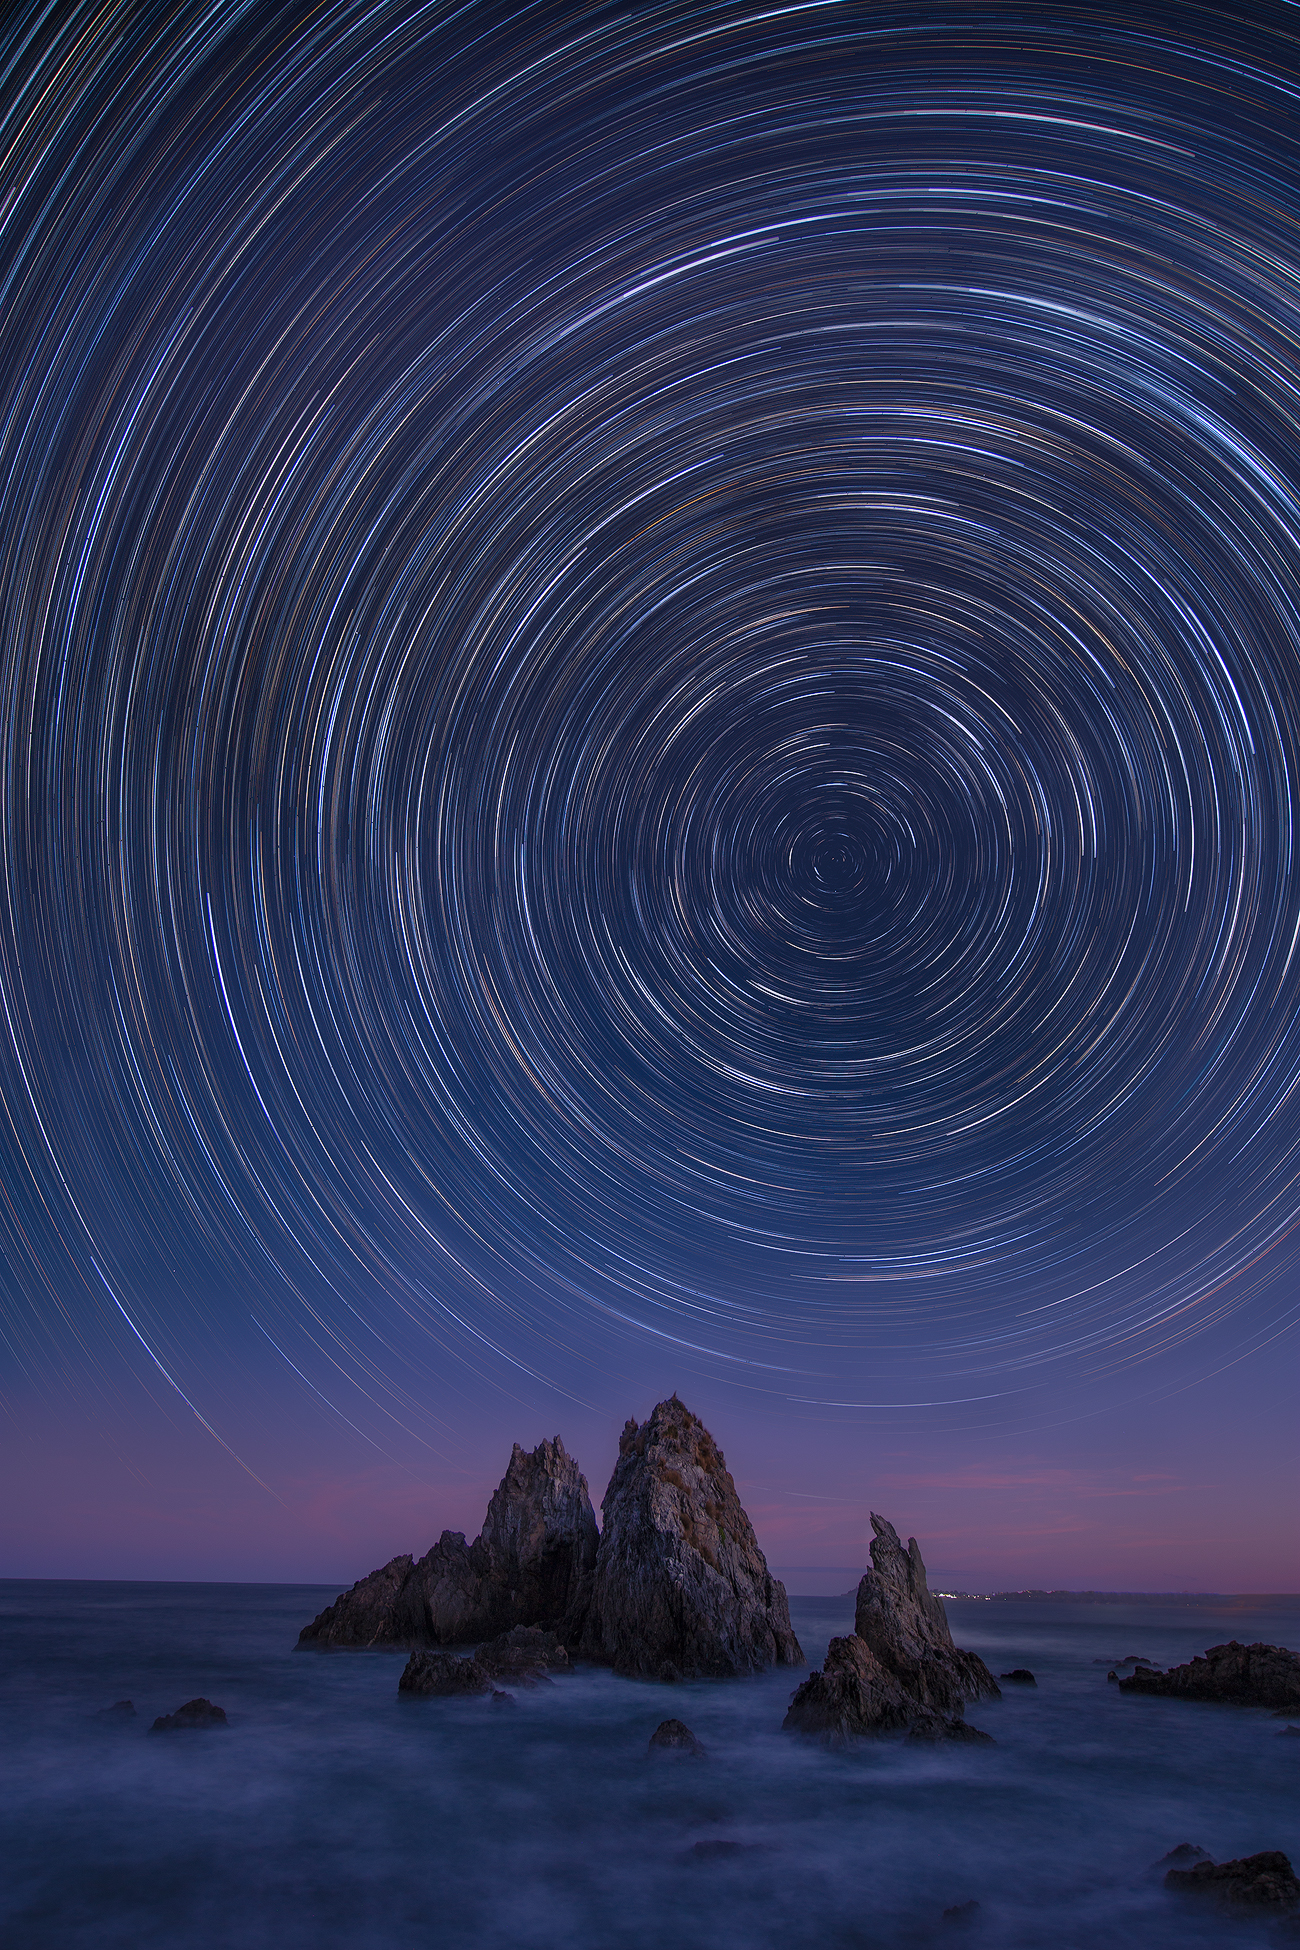 Star trail over Camel Rock in Bermagui, Australia | We Are Raw Photography Night sky, Astrophotography workshops